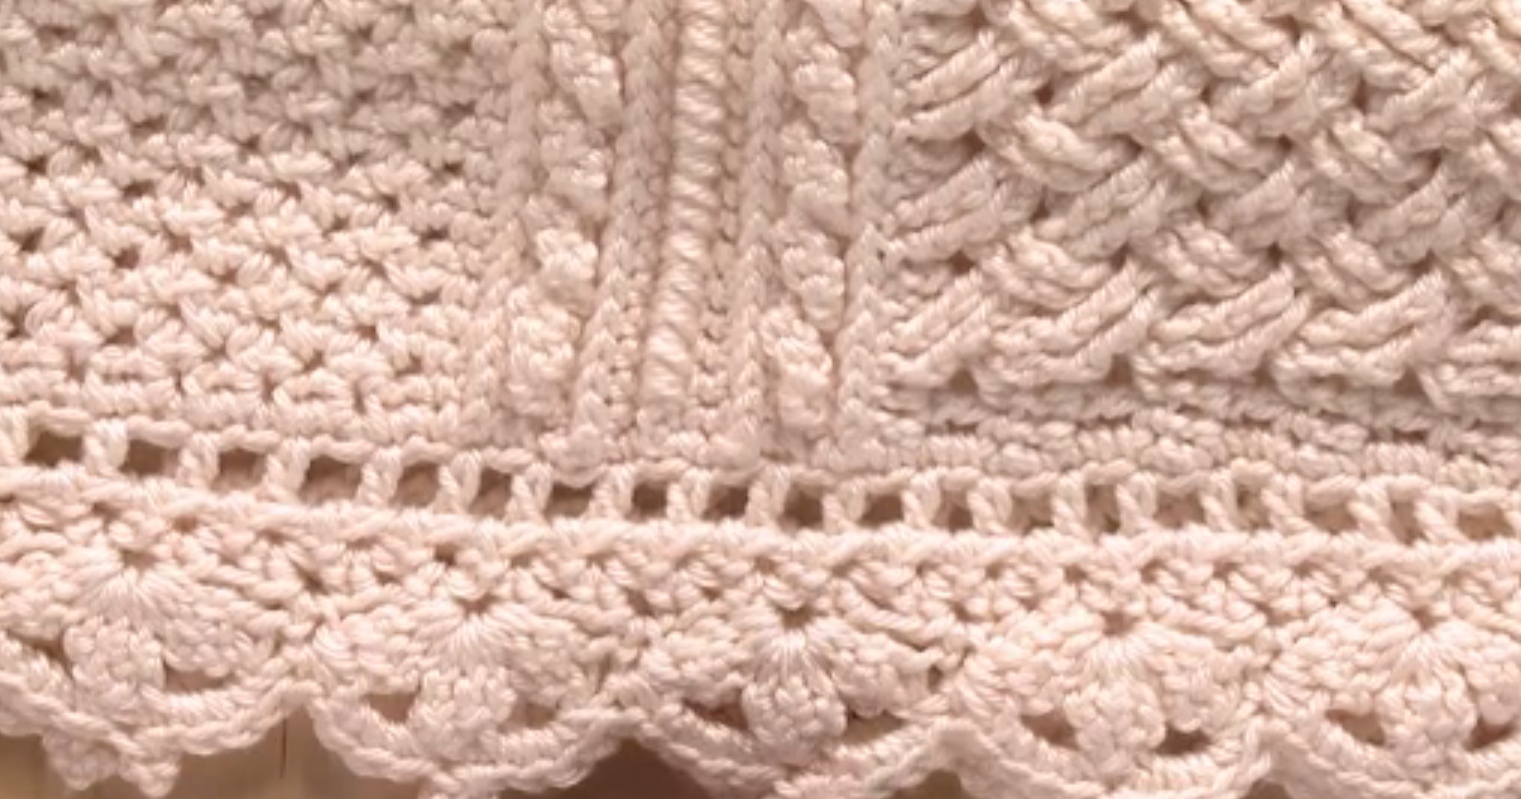 Celtic Afghan Knit Pattern Bcpreviewcrochet An Afghan Pillow With A Celtic Cross Designbonnie Barkercrochetcat2cat3cat4cat5t6707